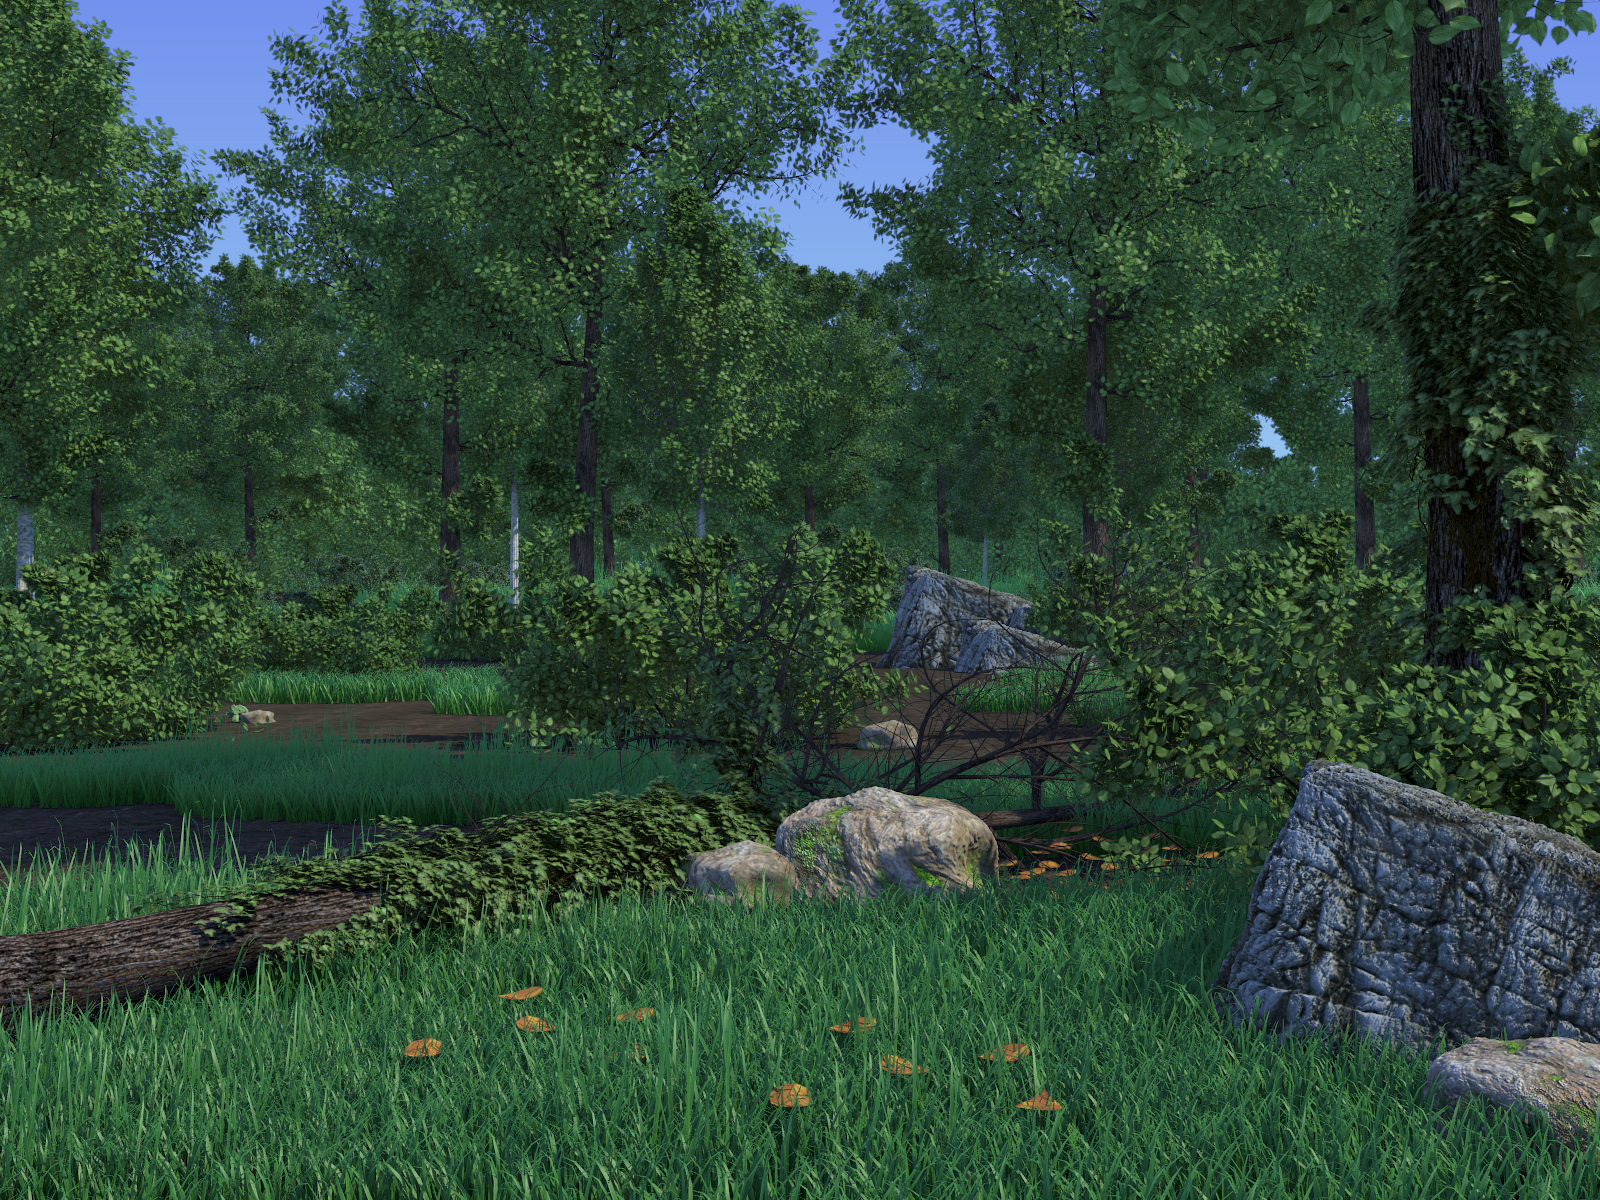 http://fc03.deviantart.net/fs71/f/2010/198/9/7/Blender_Forest_by_koolean999.jpg